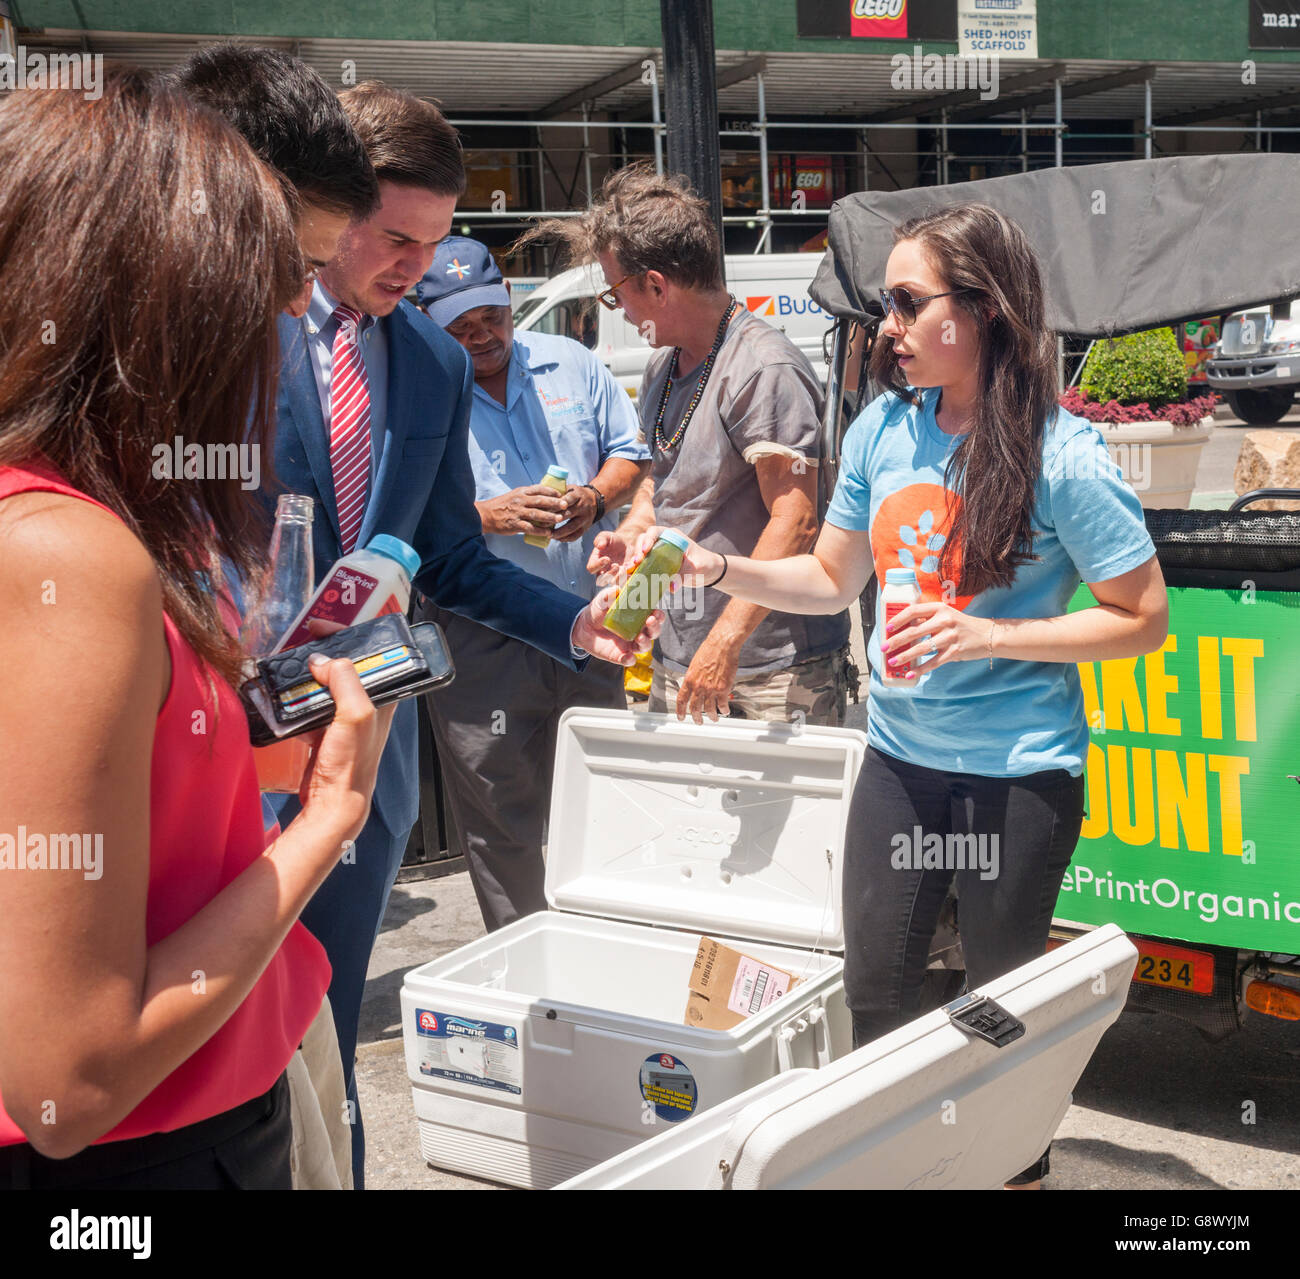 Workers give out samples of blueprint brand organic cleanse in stock workers give out samples of blueprint brand organic cleanse in flatiron plaza in new york on wednesday june 22 2016 blueprint manufactures organic juices malvernweather Image collections